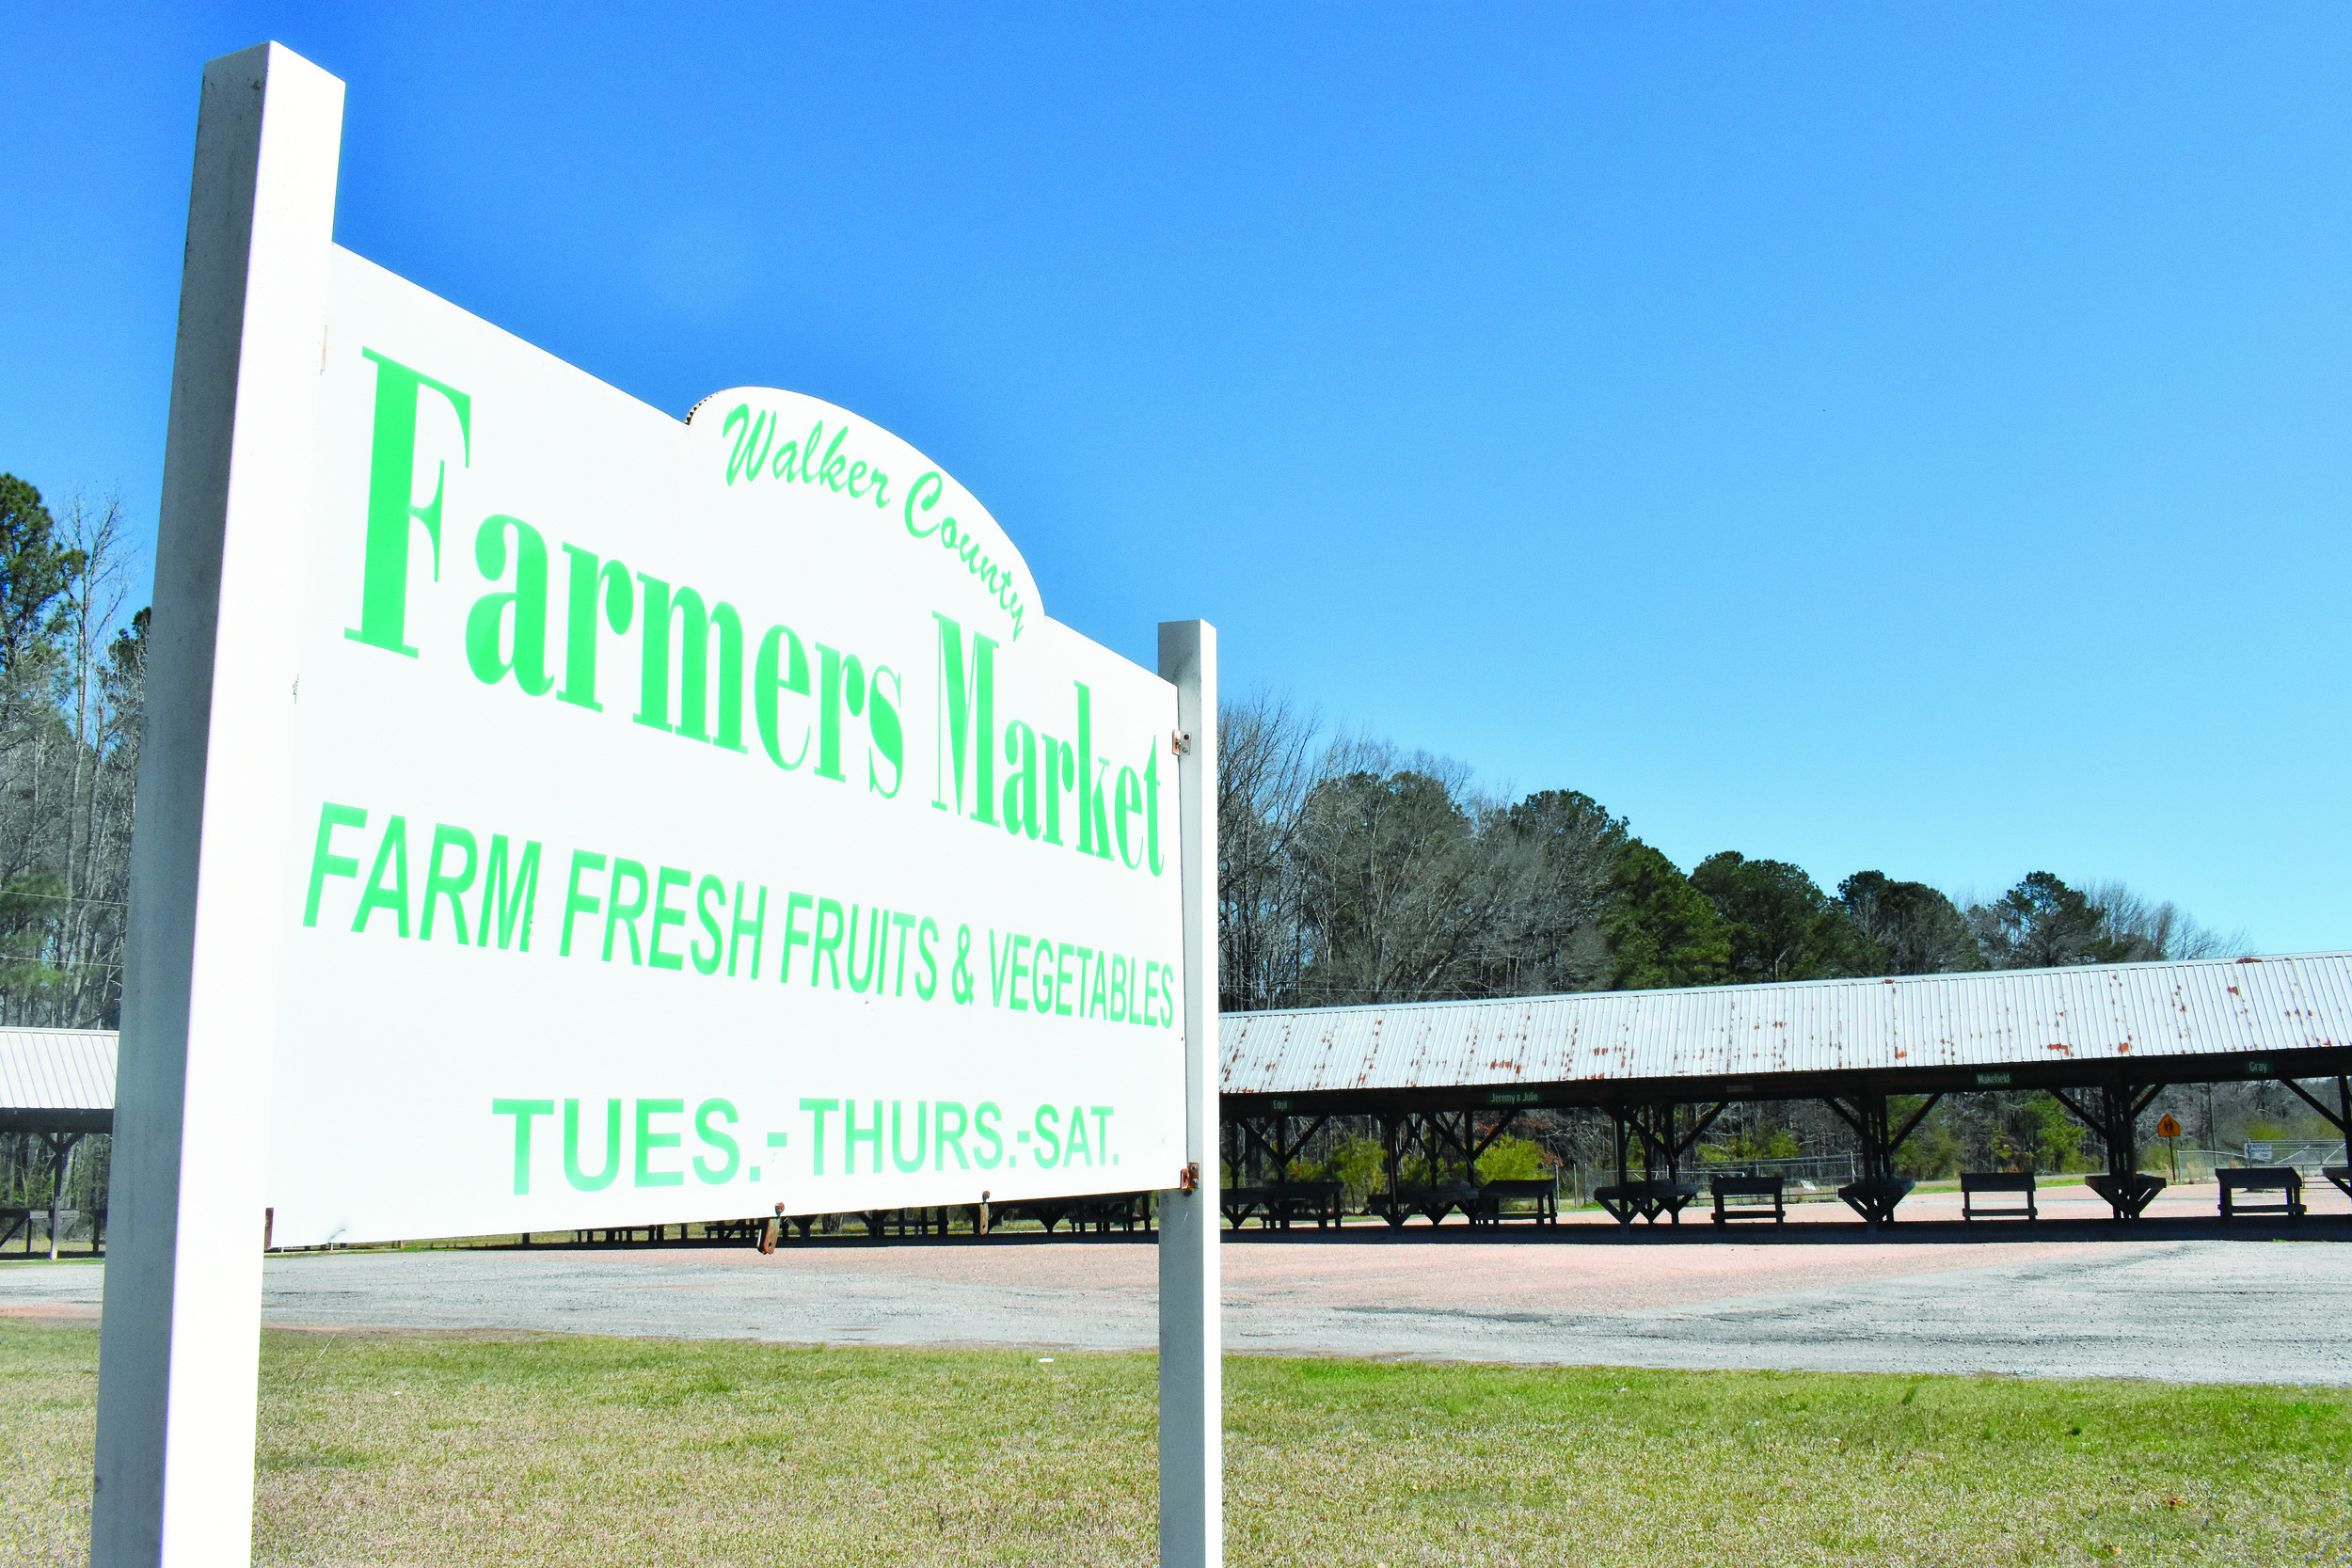 The Walker County Commission says it has no responsibility over concerns about what is sold at the Walker County Farmer's Market in Jasper, as the county only leases the land for it.